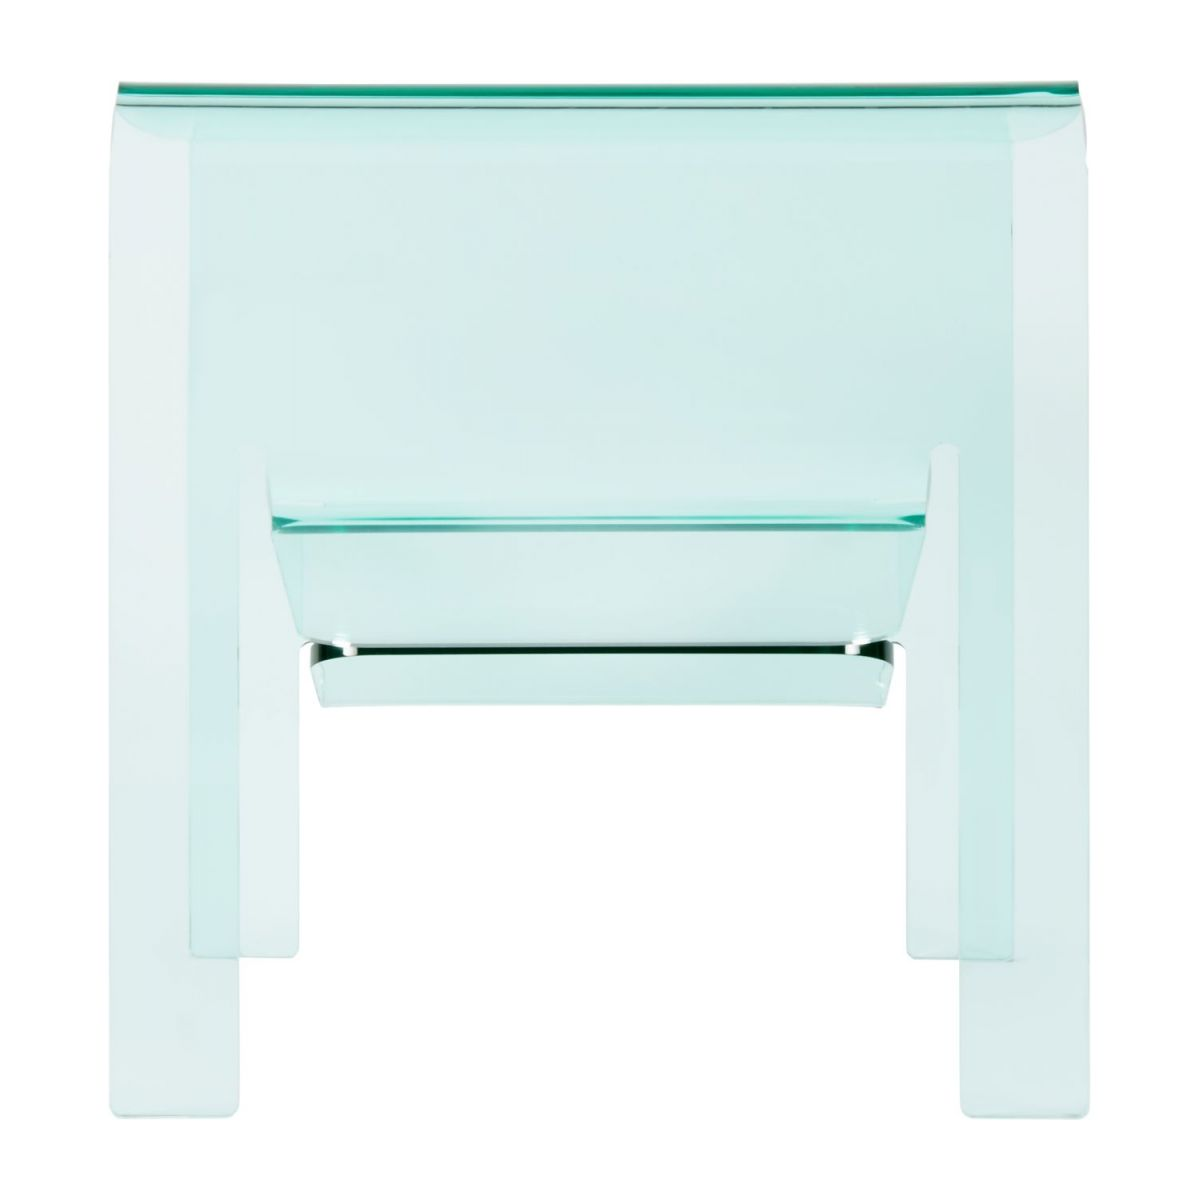 Table d'appoint en acrylique transparente n°4